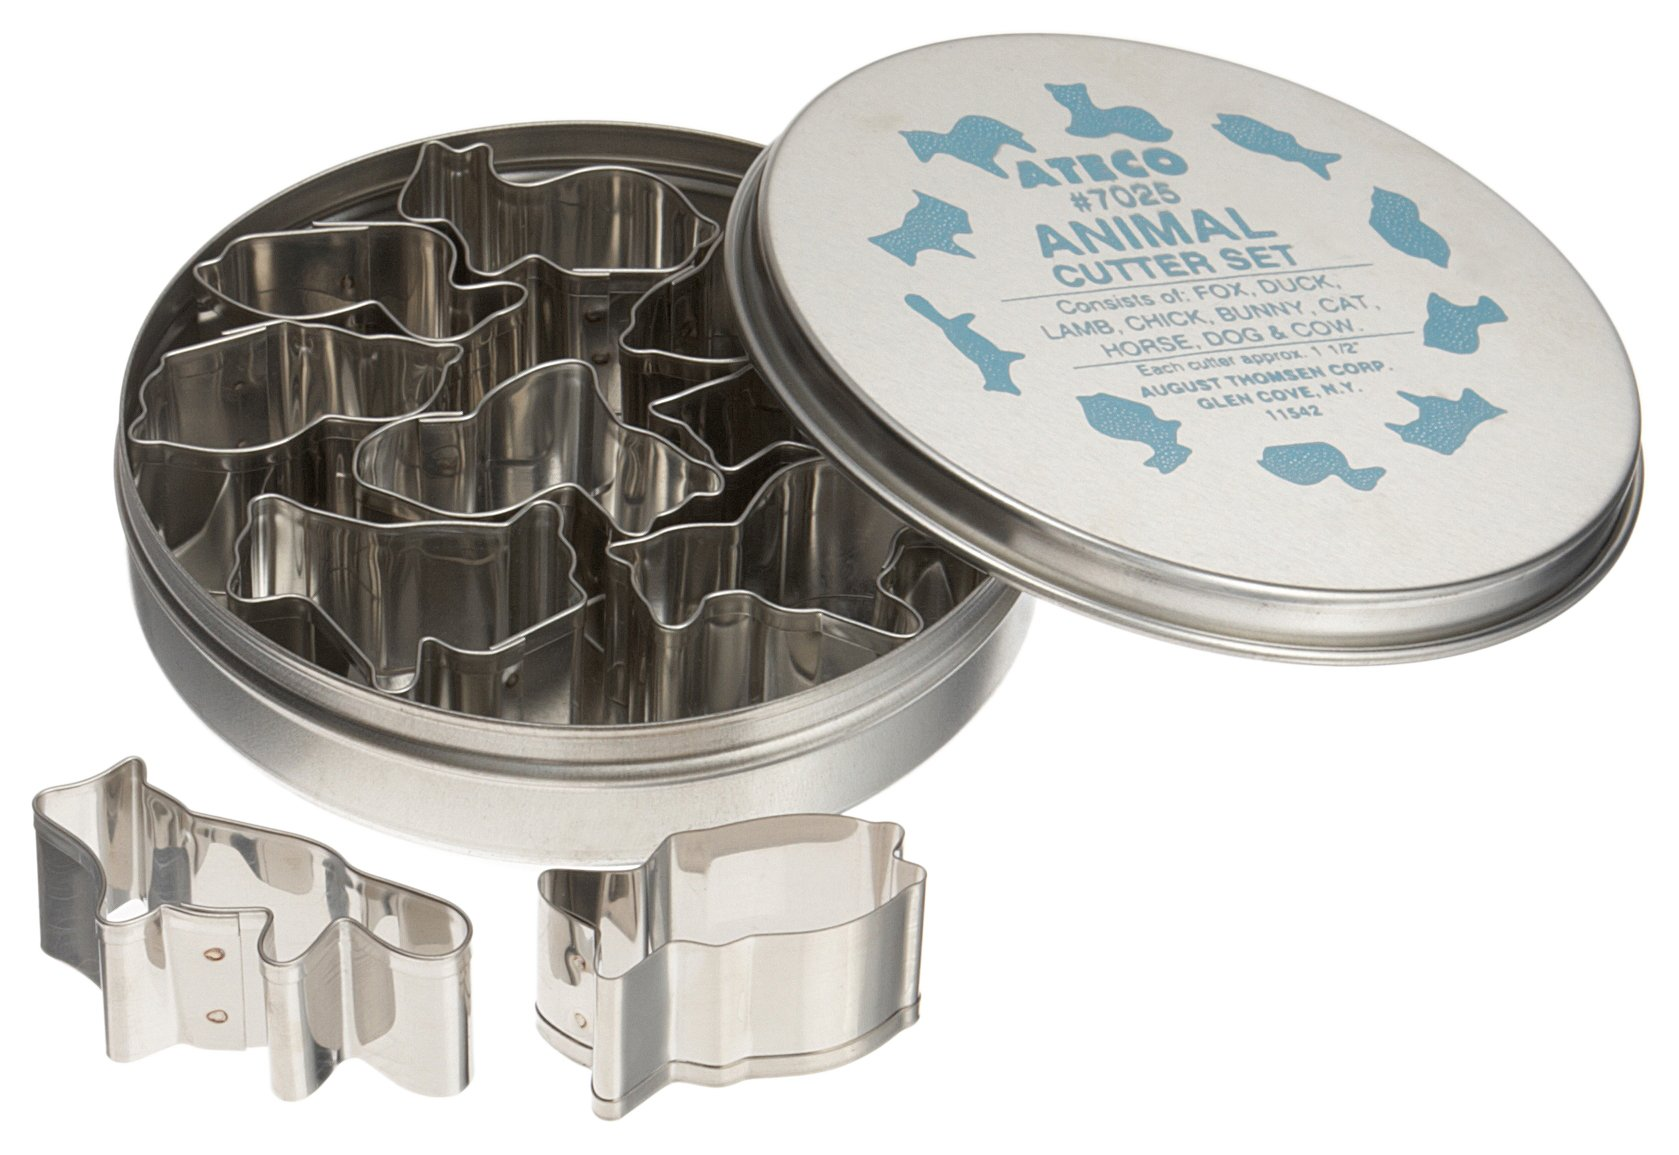 Ateco 7025 Plain Edge Animal Cutters in Assorted Animal Shapes, Stainless Steel, 10 Pc Set